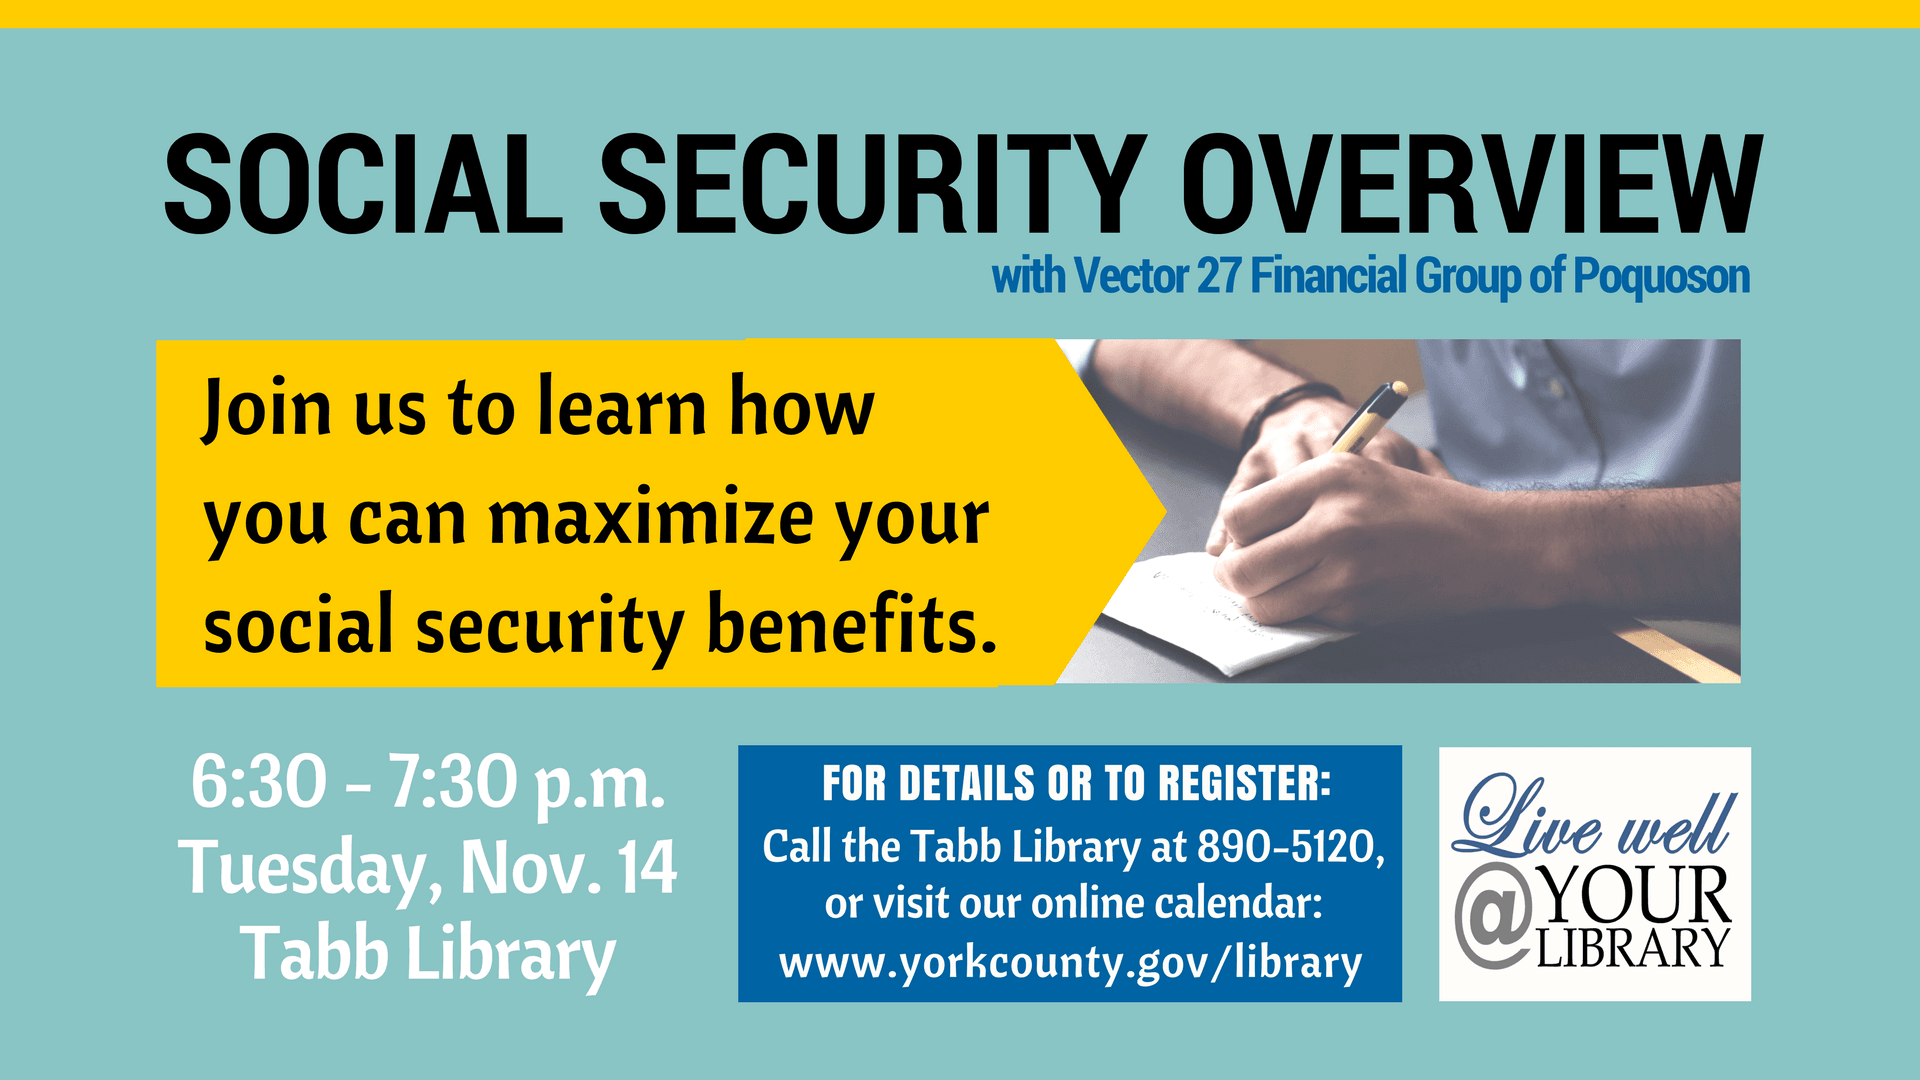 A Social Security Overview will be held the evening of November 14 at Tabb Library